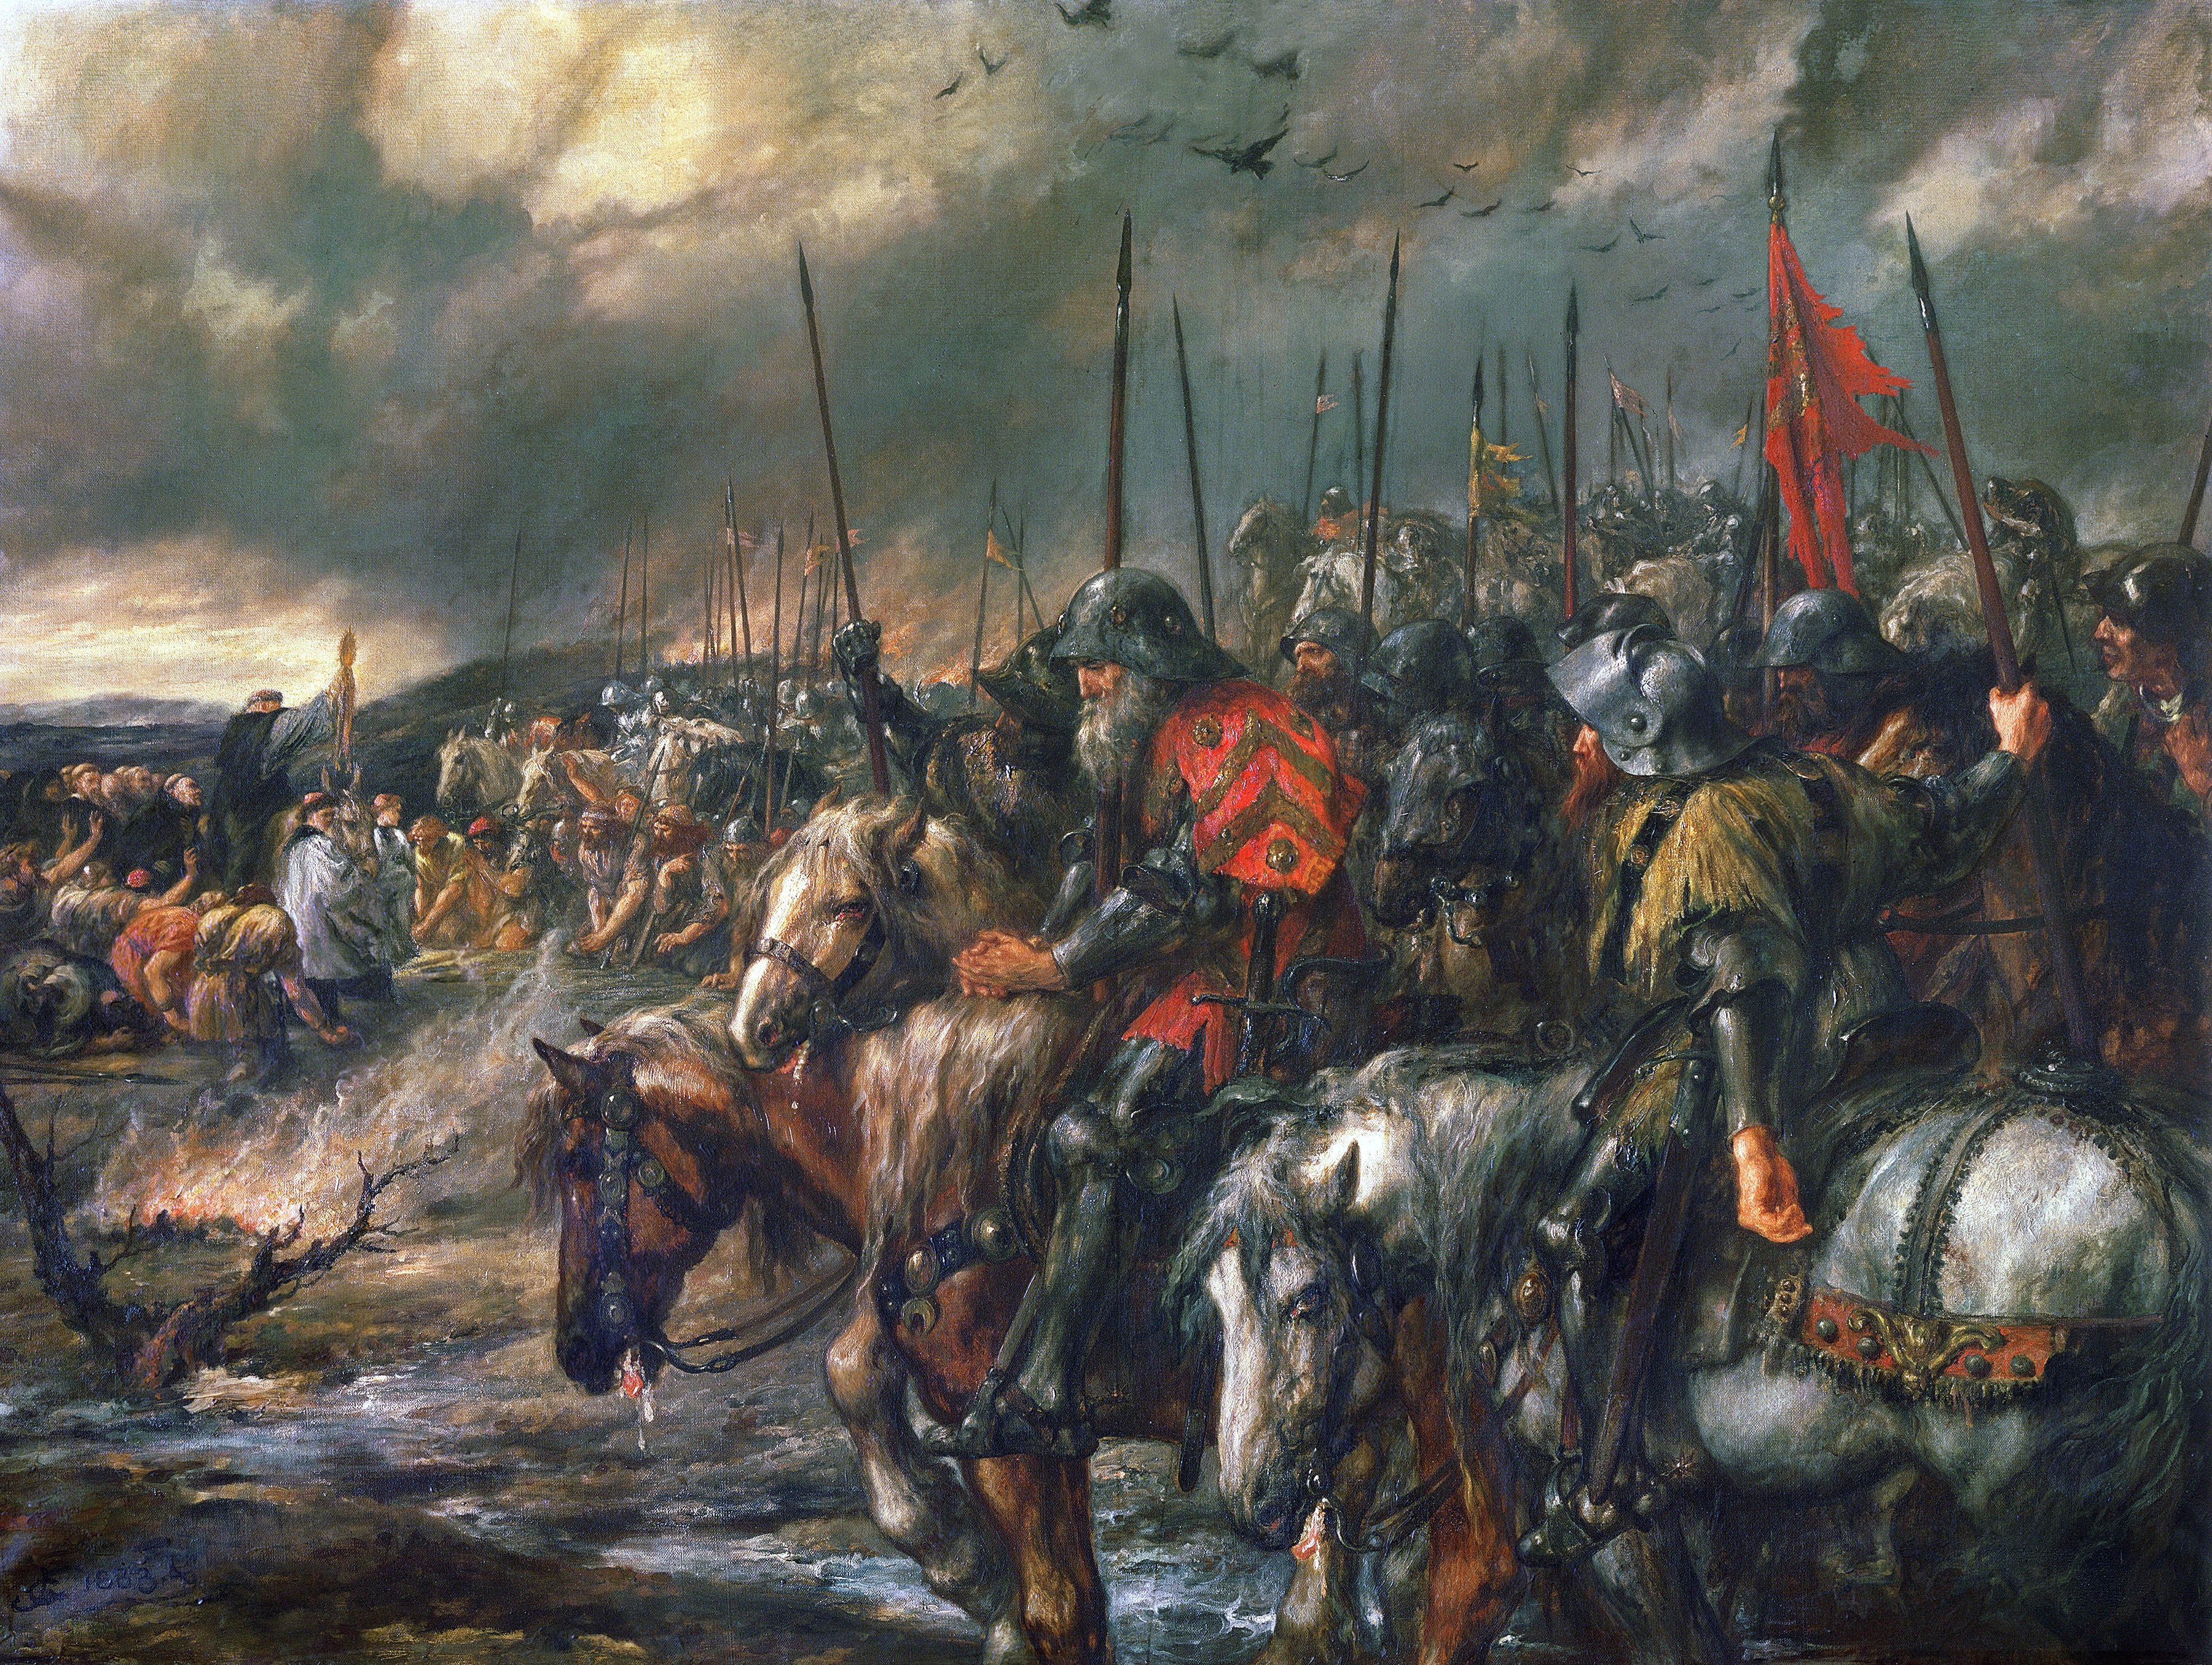 Bataille d'Azincourt le vendredi 25 octobre 1415 pendant la guerre de Cent Ans Morning_of_the_Battle_of_Agincourt%2C_25th_October_1415